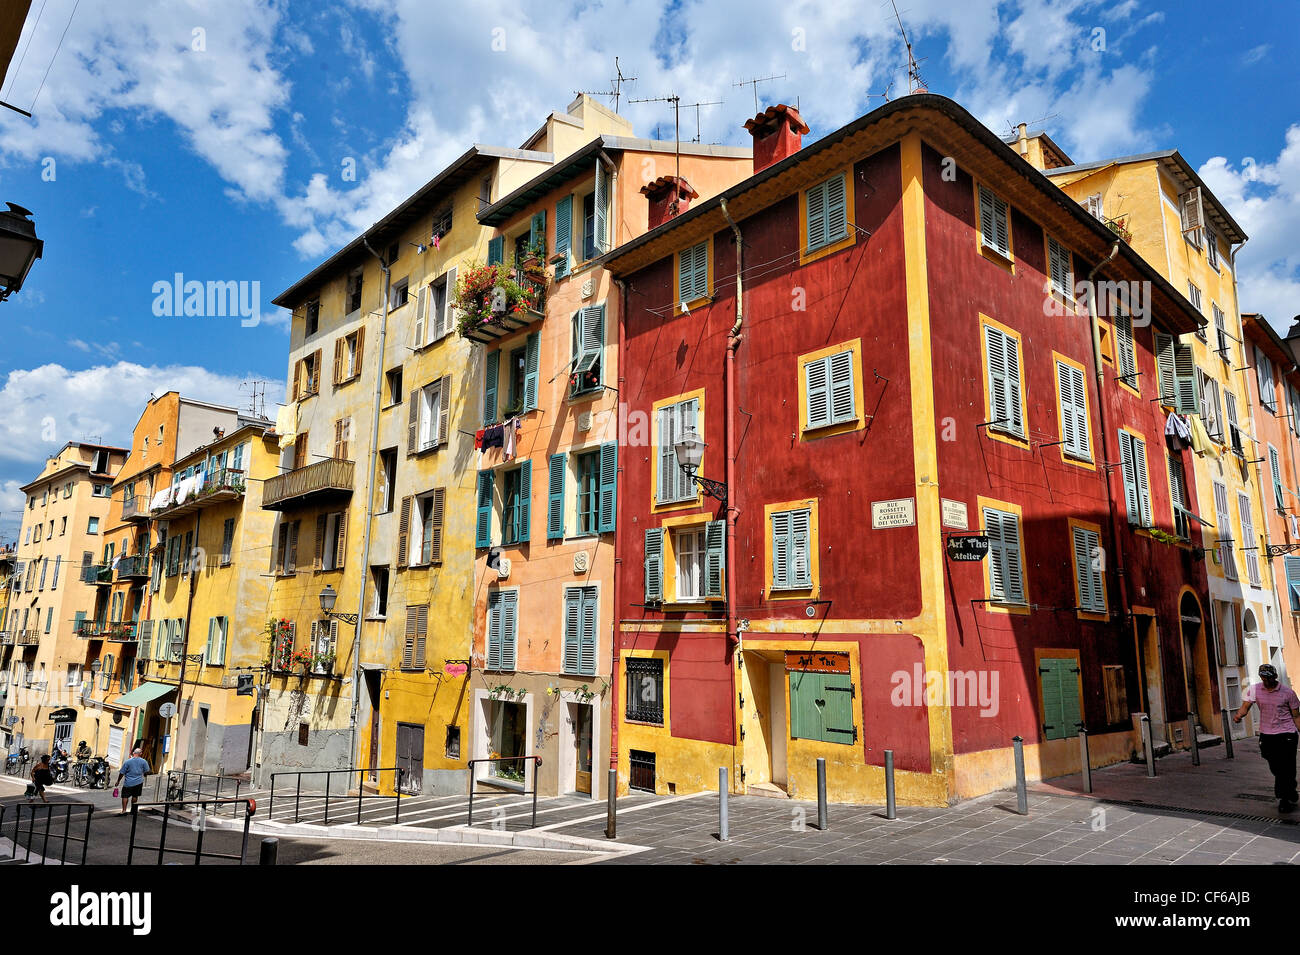 The old town, Nice, cote d'azur, France. - Stock Image